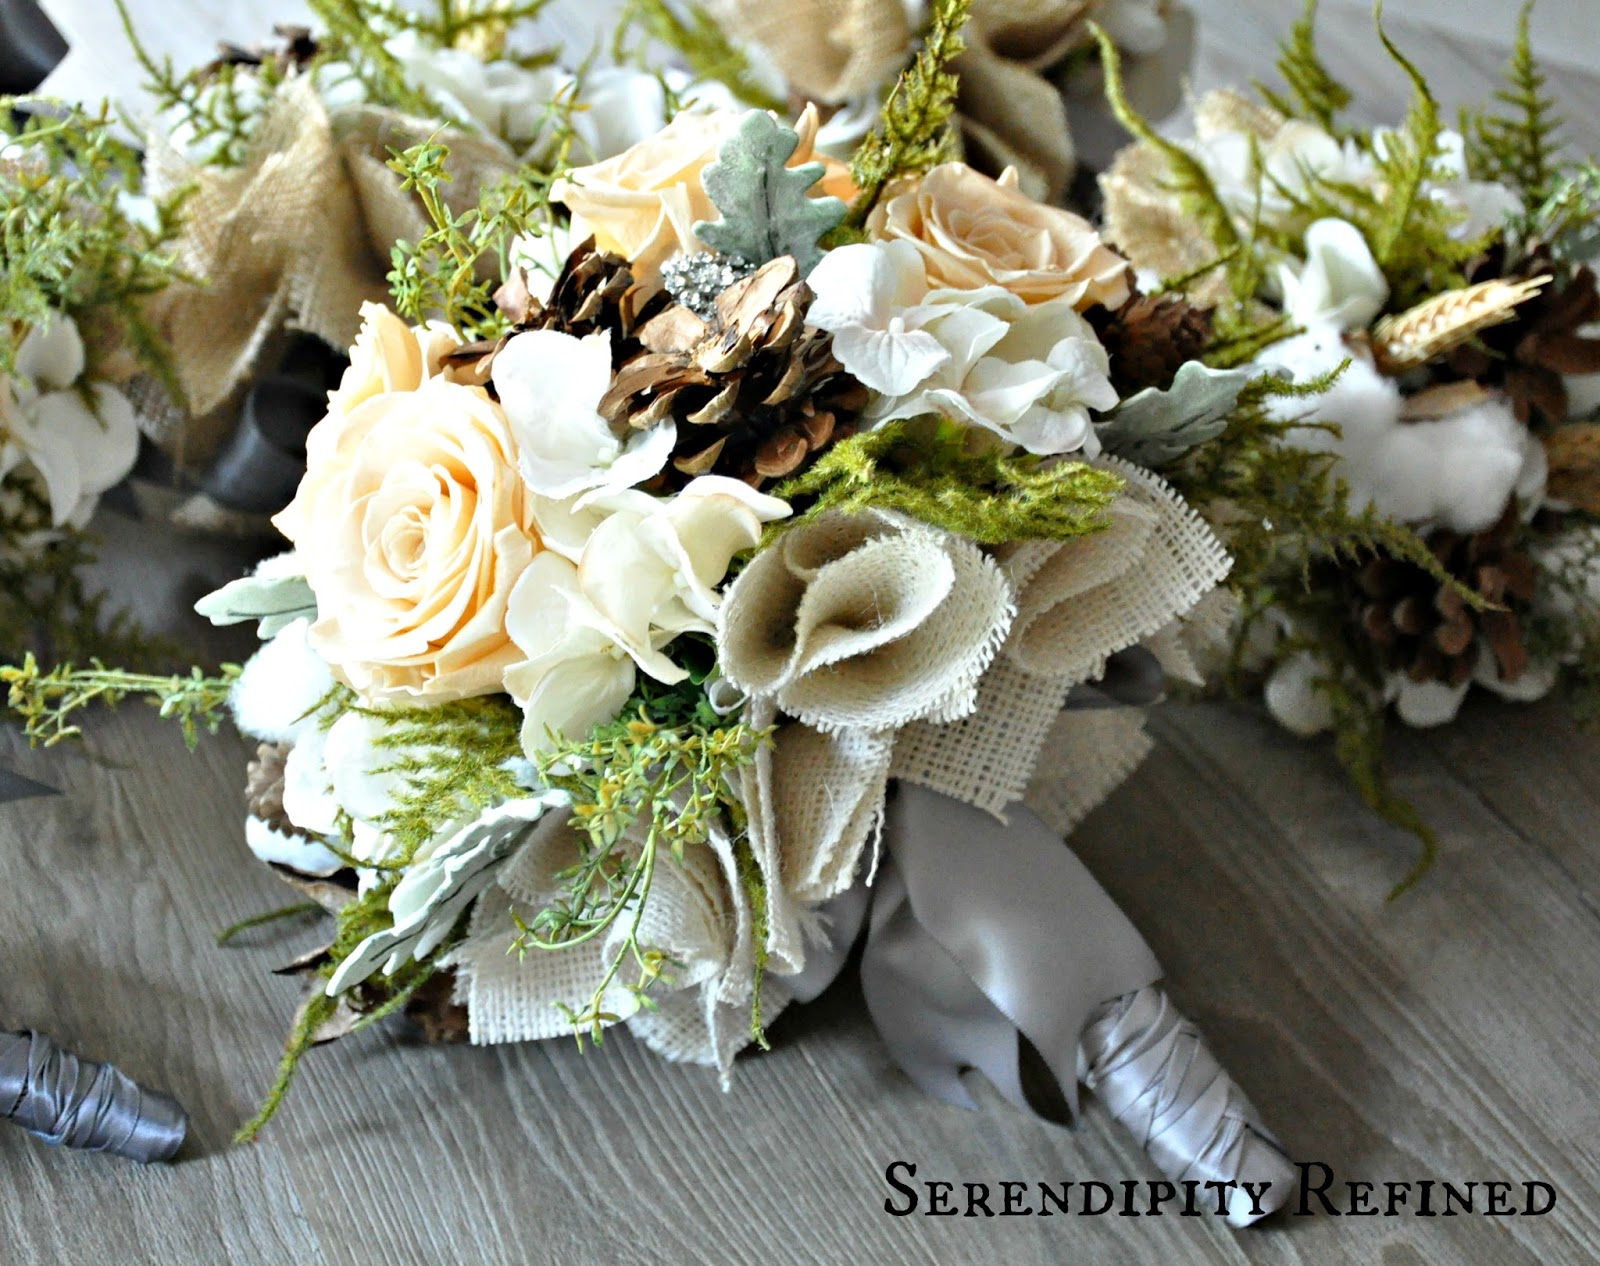 Serendipity refined blog flowers for an autumn wedding pinecones flowers for an autumn wedding pinecones roses burlap and cotton mightylinksfo